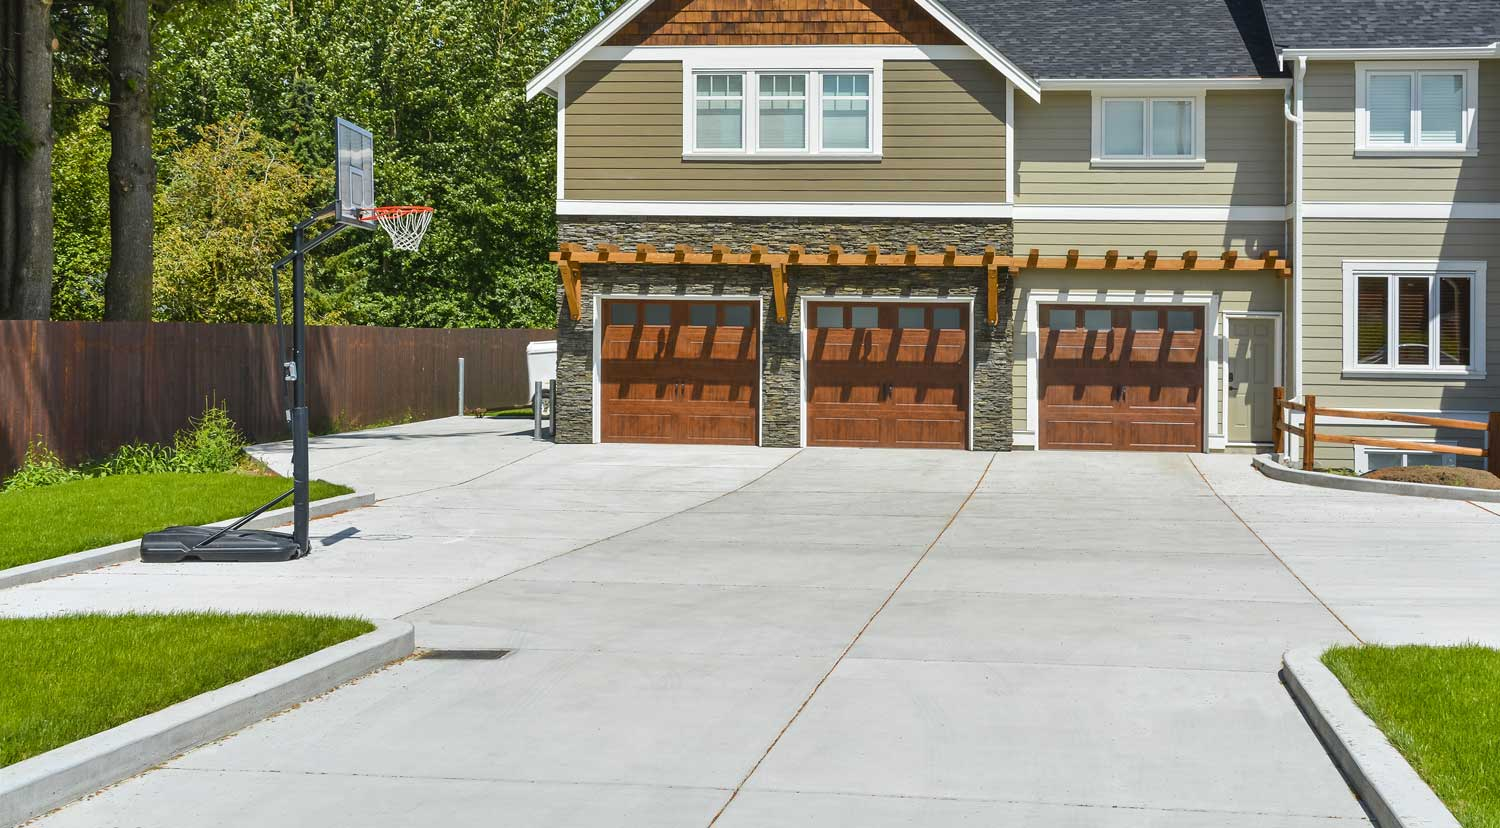 New concrete driveway in front of a home